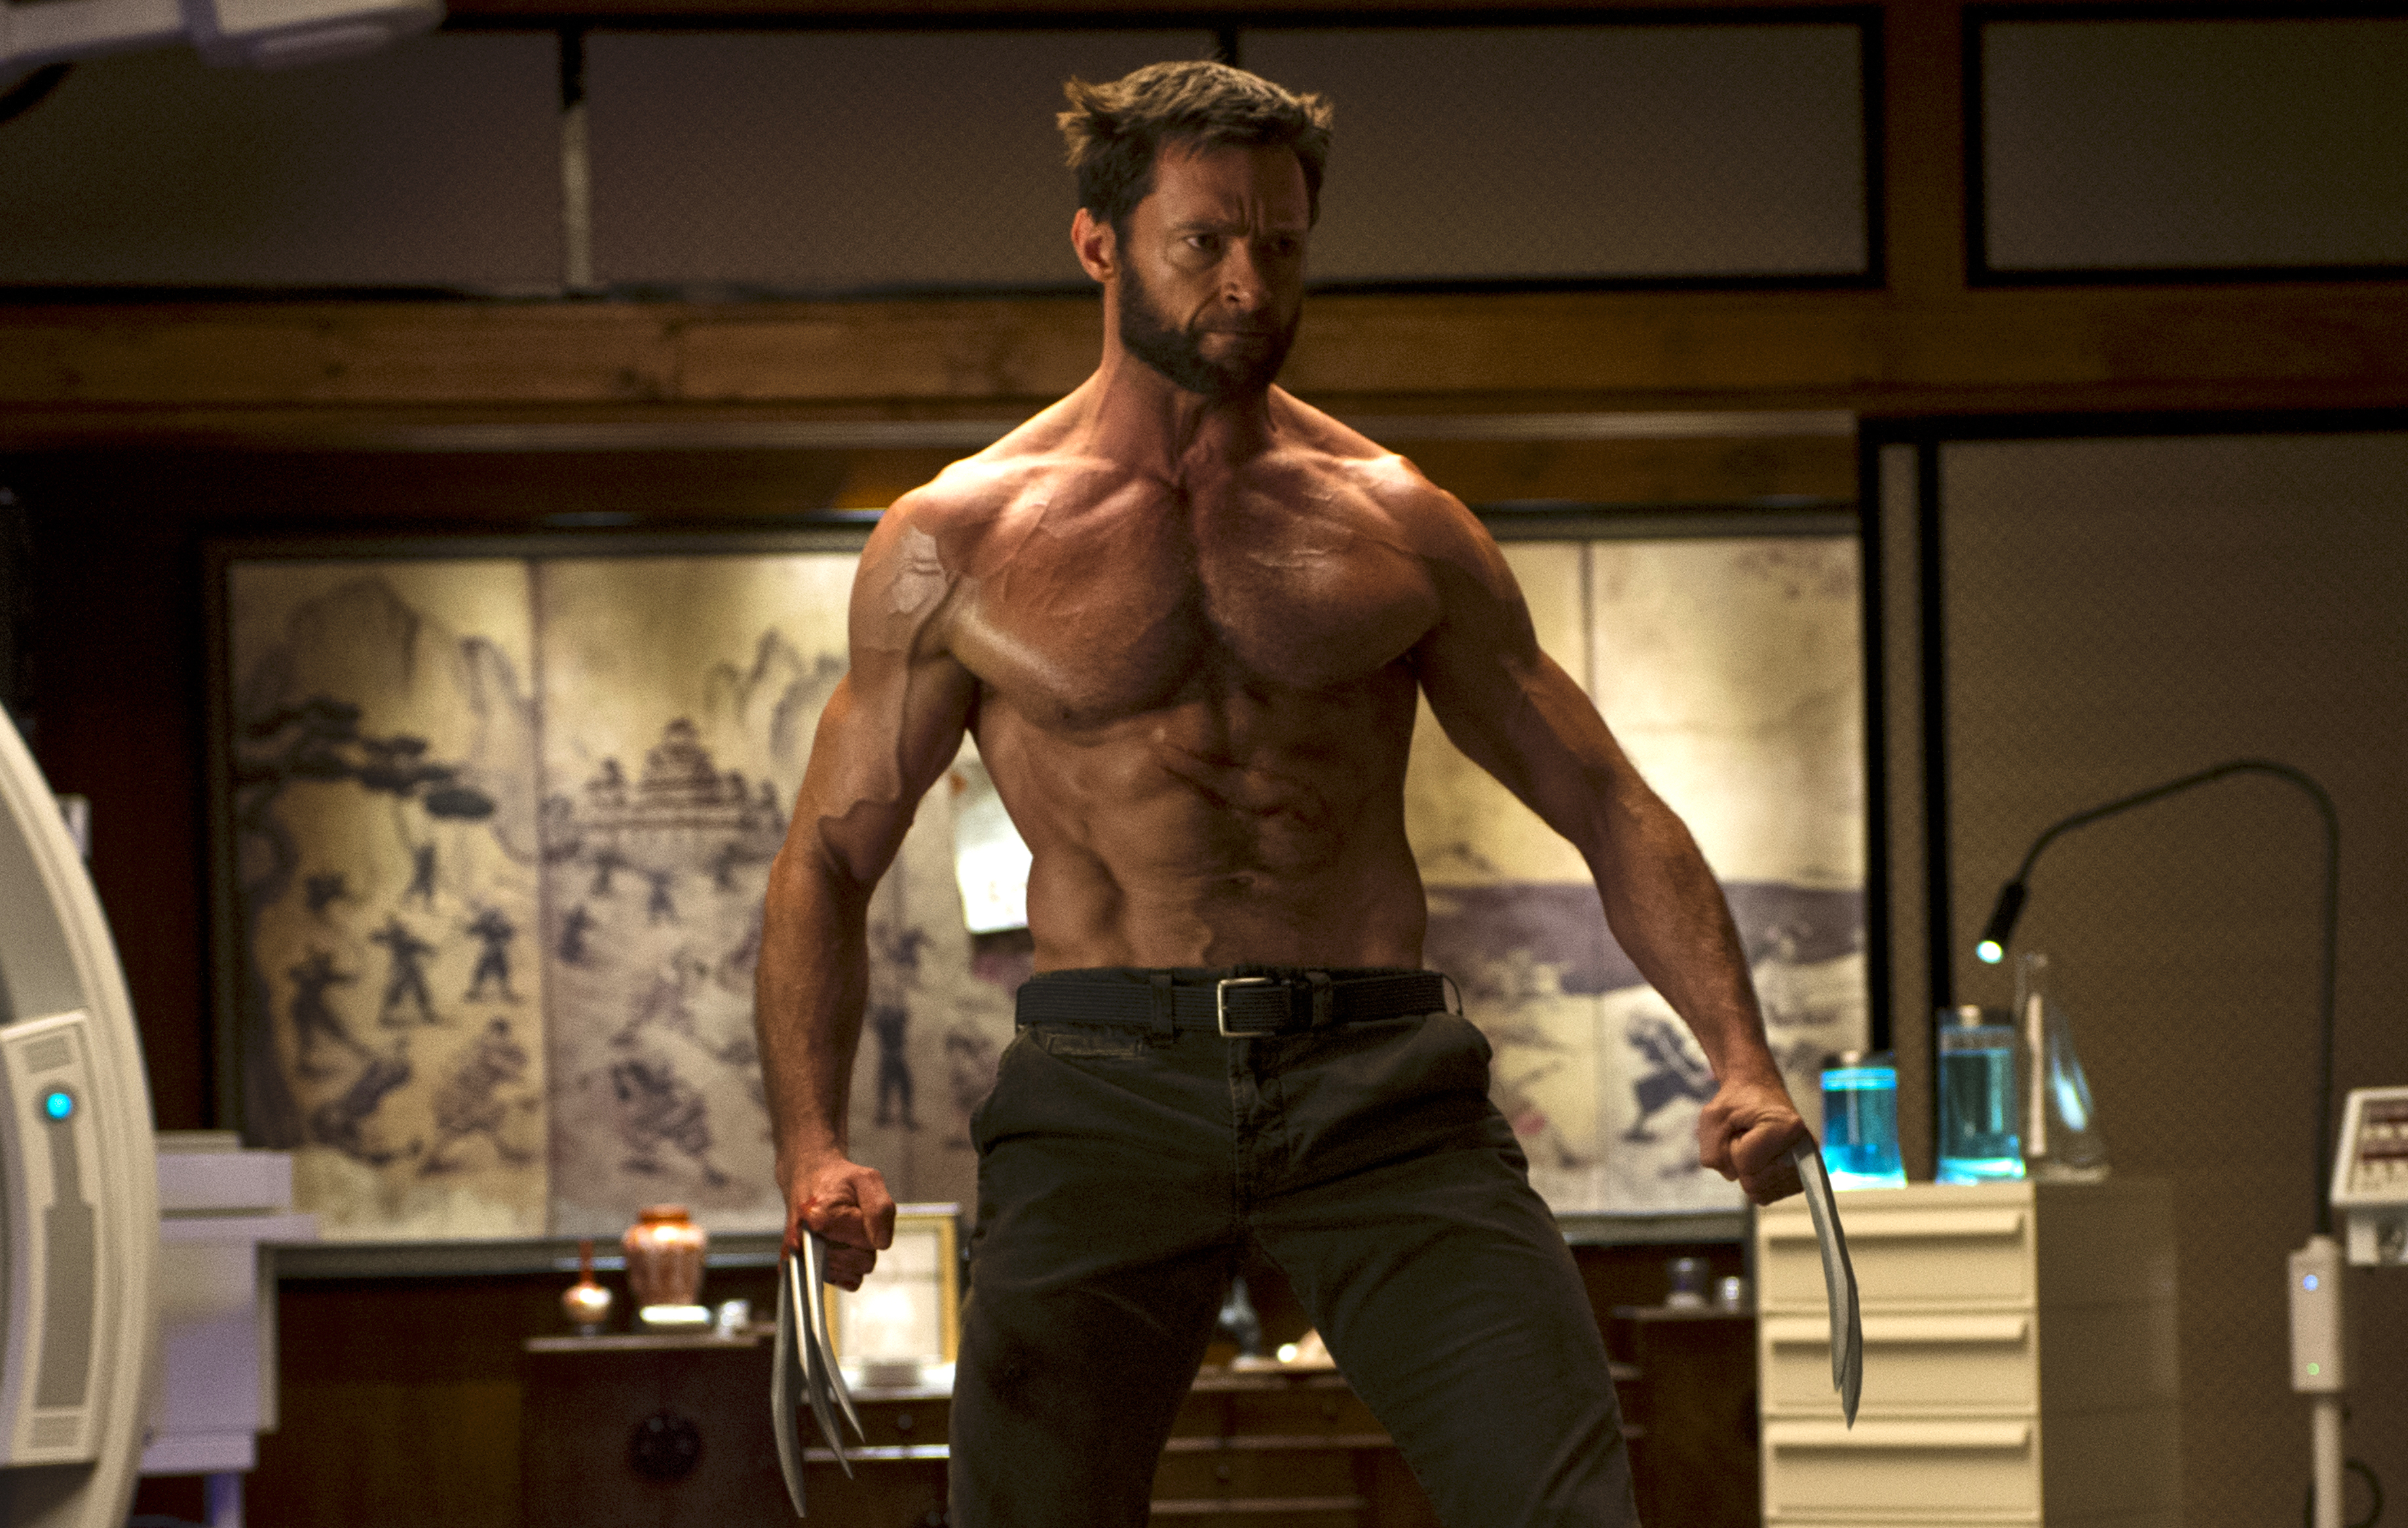 hugh jackman as the (shirtless and extremely ripped) wolverine in The Wolverine from 2013